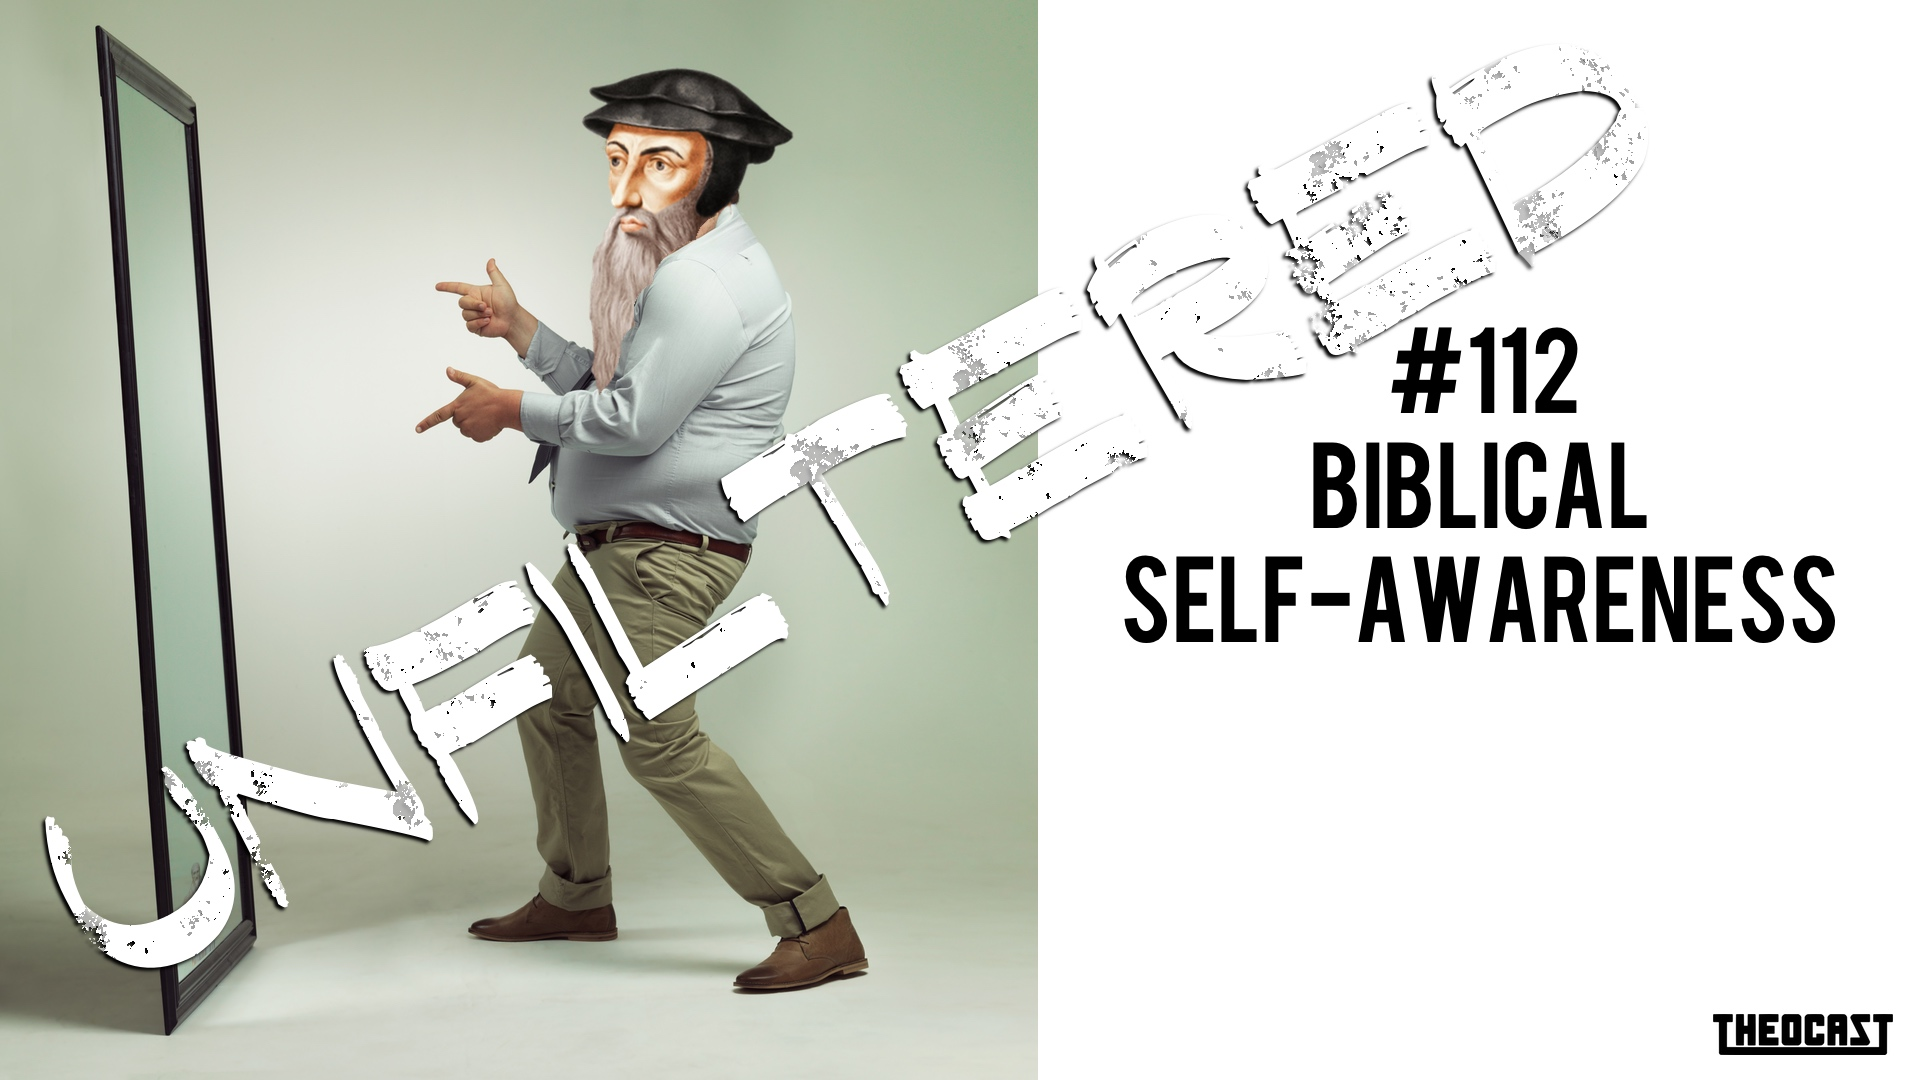 UNFILTERED #112 Biblical Self-Awareness